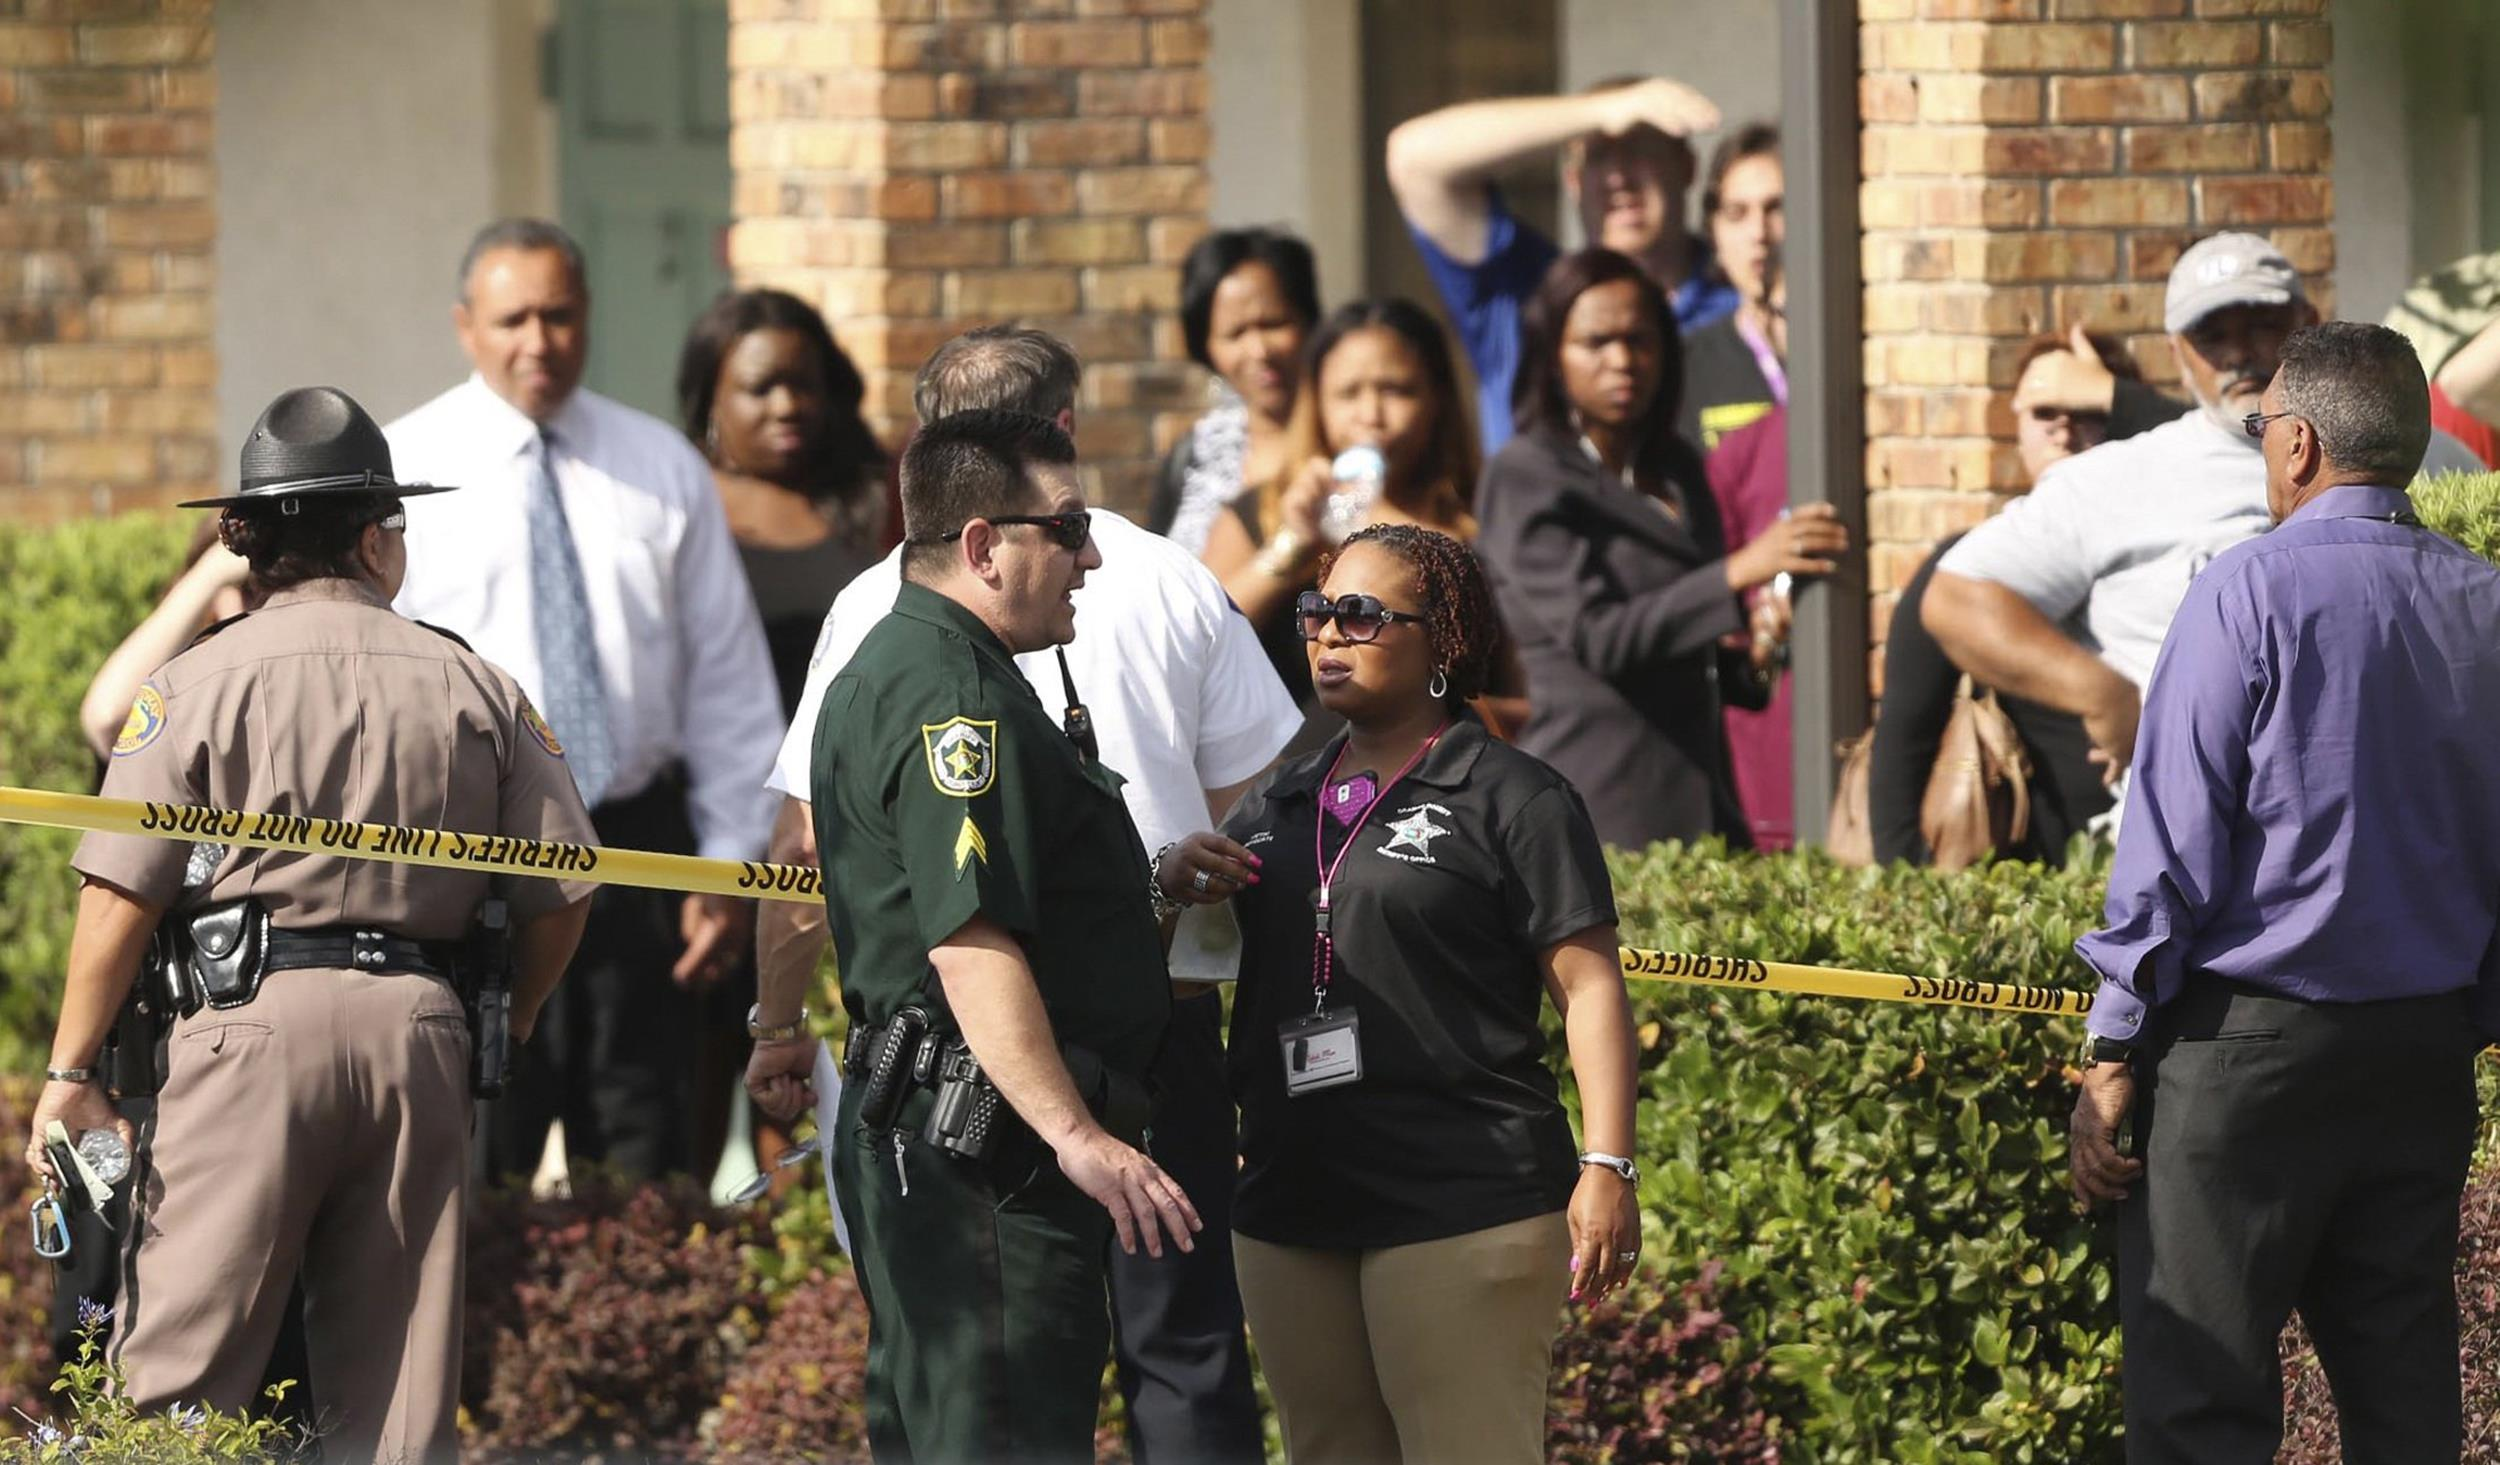 Image: Parents wait behind as police consult after several children were injured after being struck by a vehicle at a KinderCare Learning Center in Winter Park